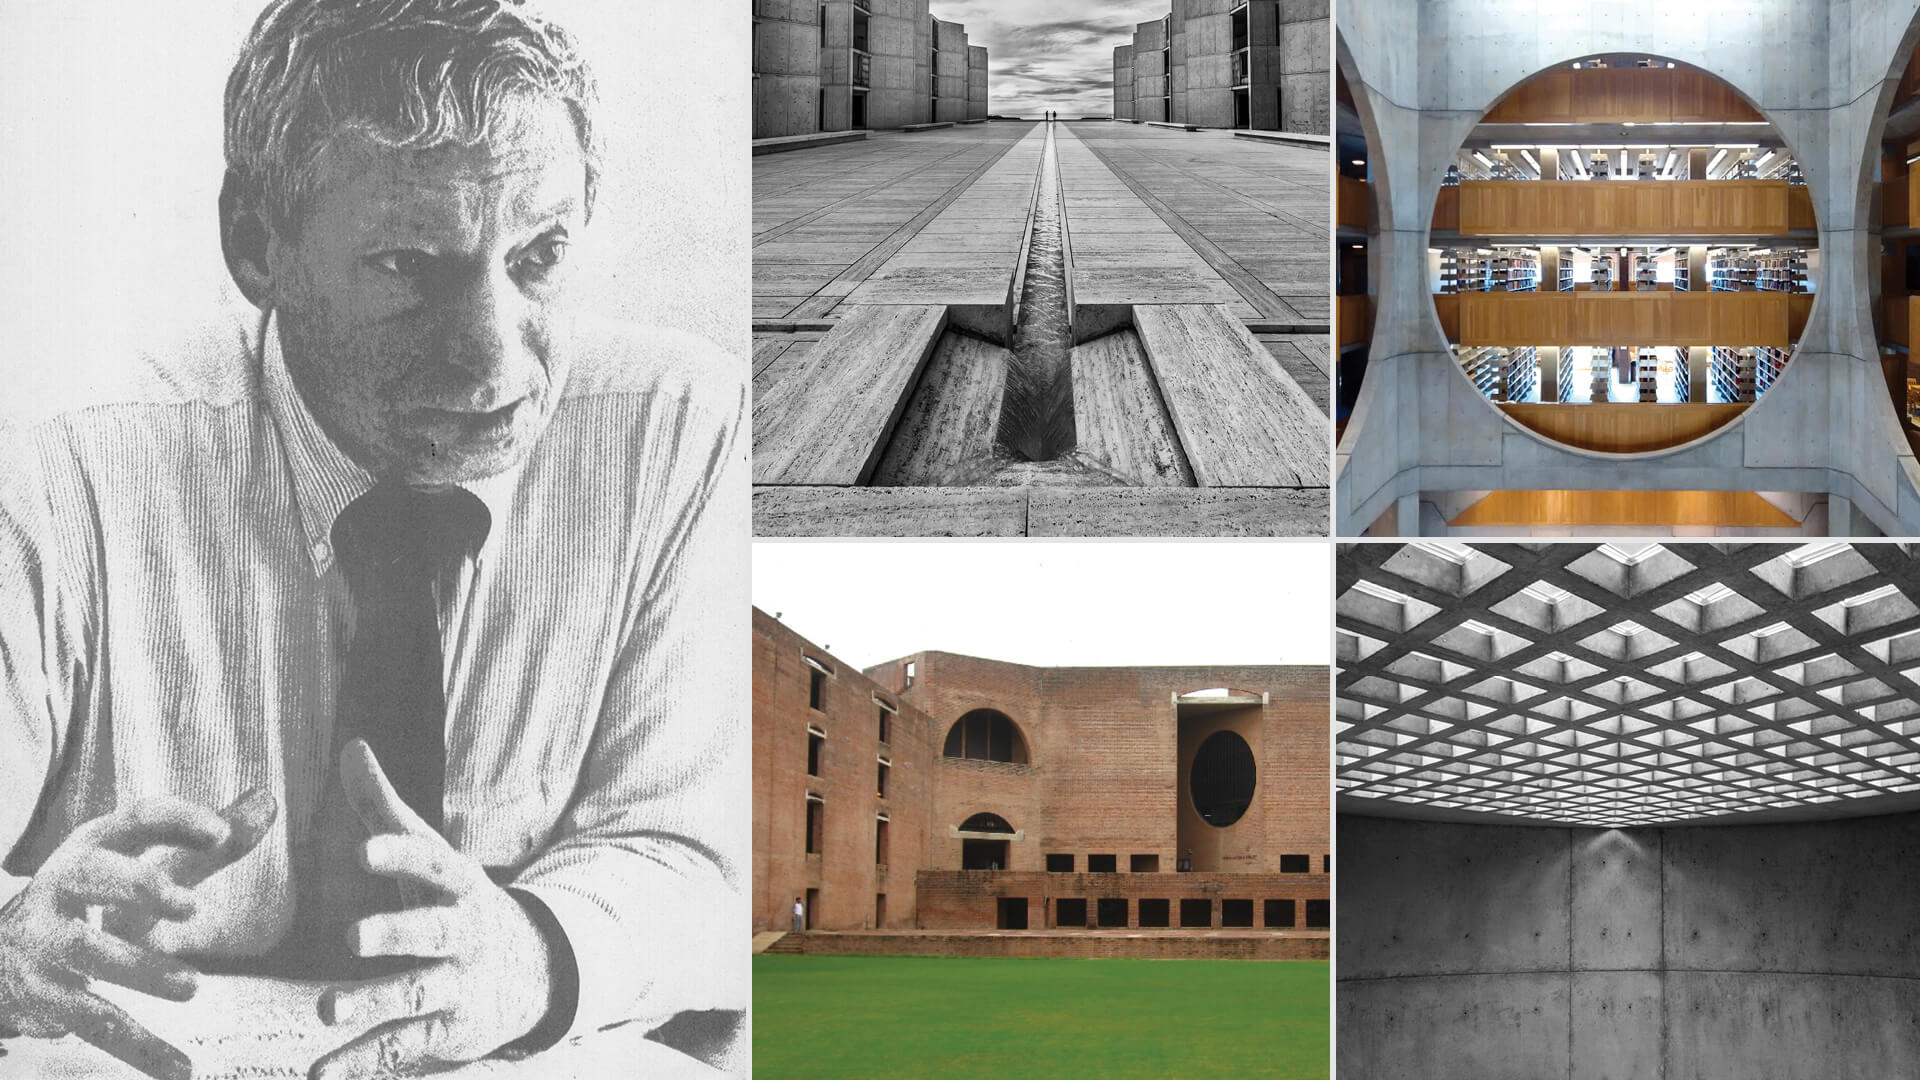 Louis Isadore Kahn (February 20, 1901 – March 17, 1974), a champion of modernist architecture globally | Louis Kahn Tribute, The Notebooks and Drawings of Louis I. Kahn | Louis Kahn, Designers and Books| STIRworld